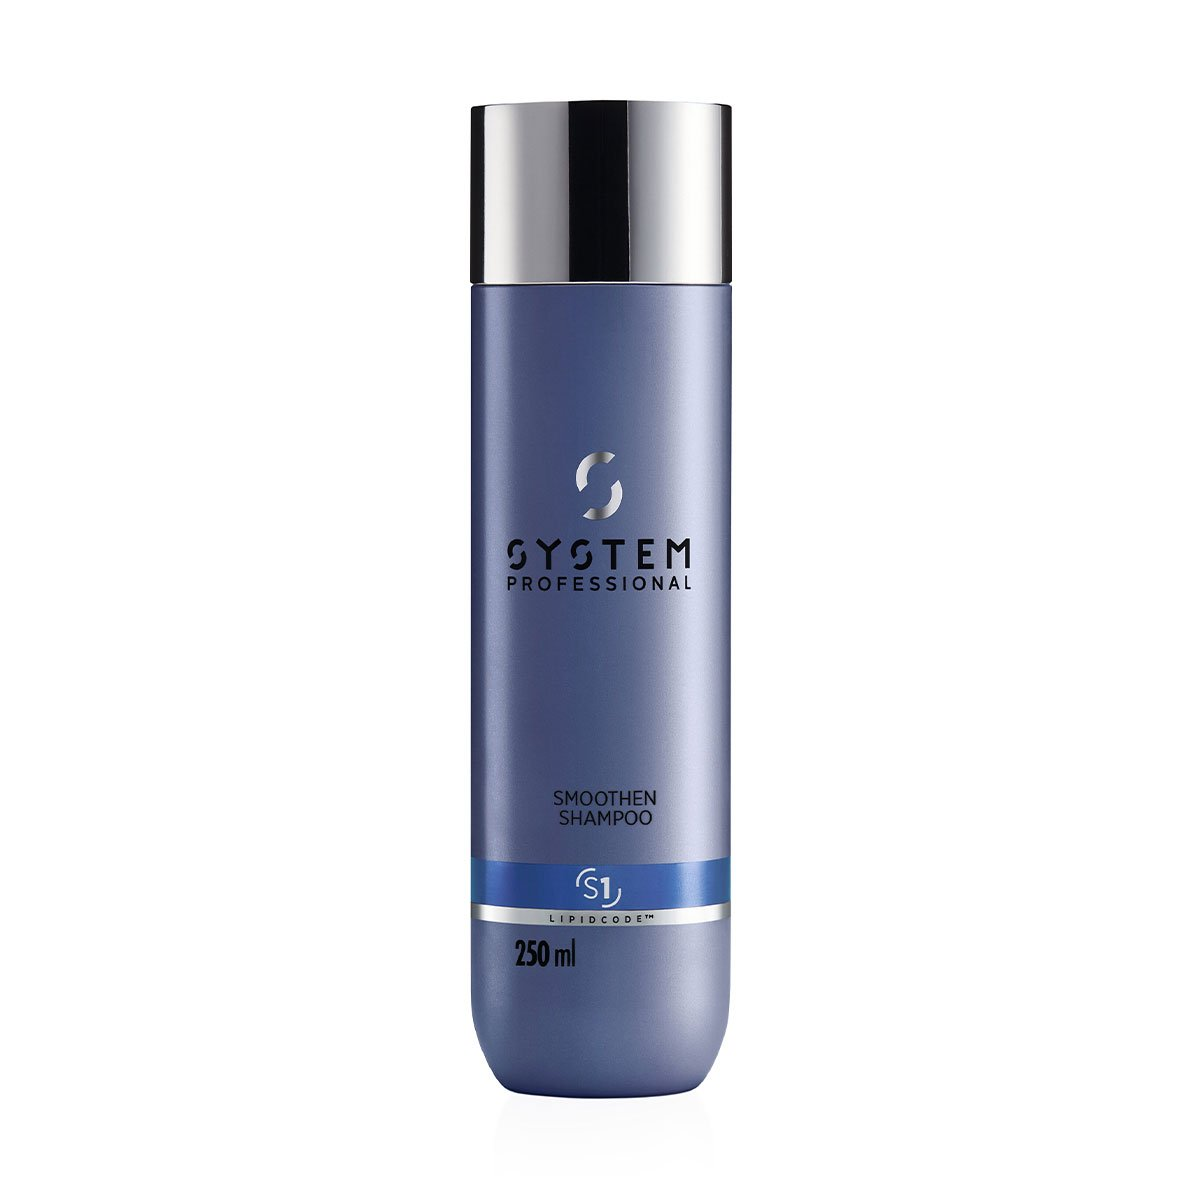 System Professional Smoothen Shampoo